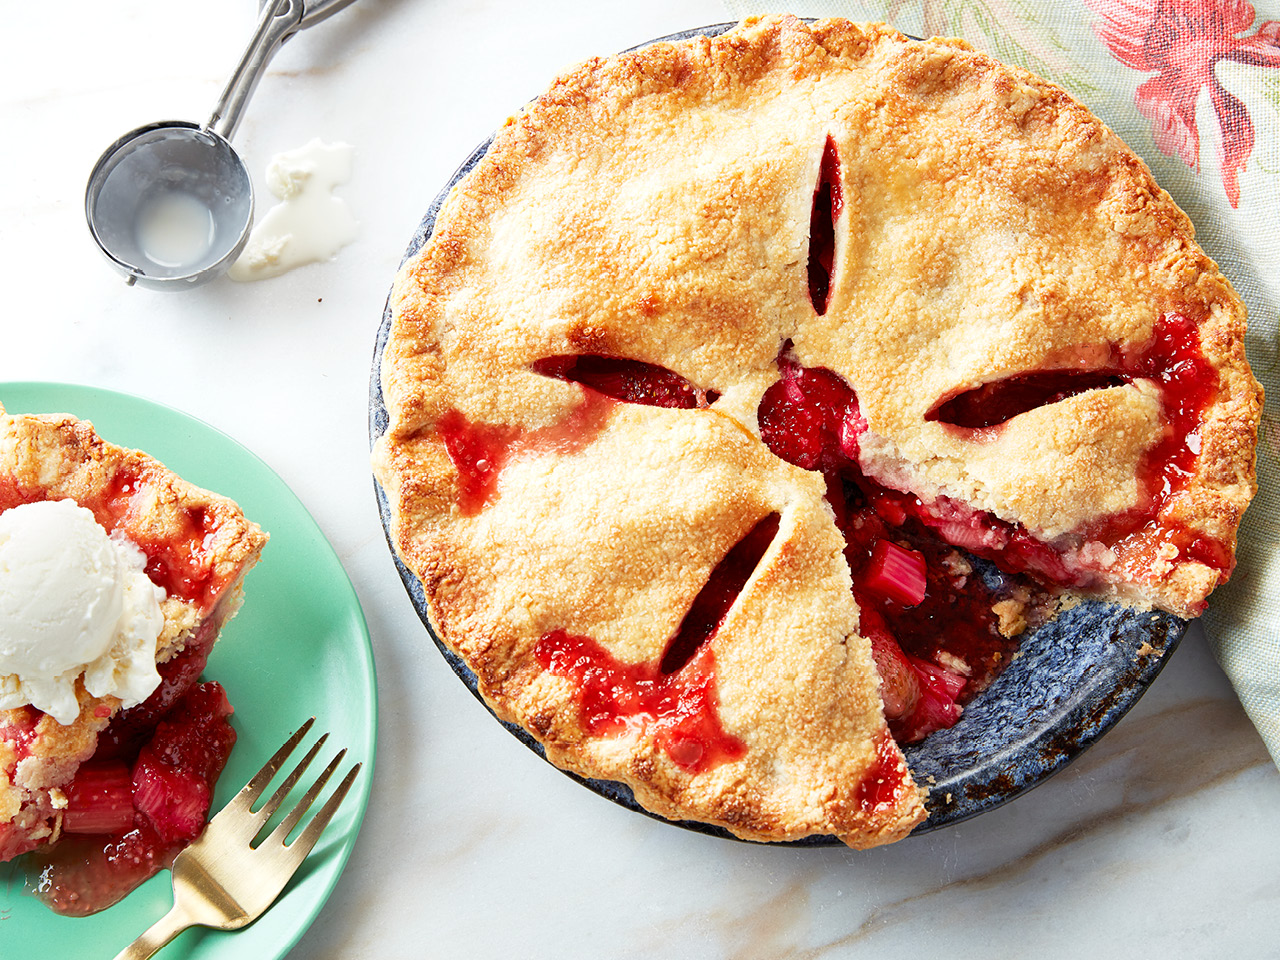 Strawberry rhubarb pie with a slice cut out